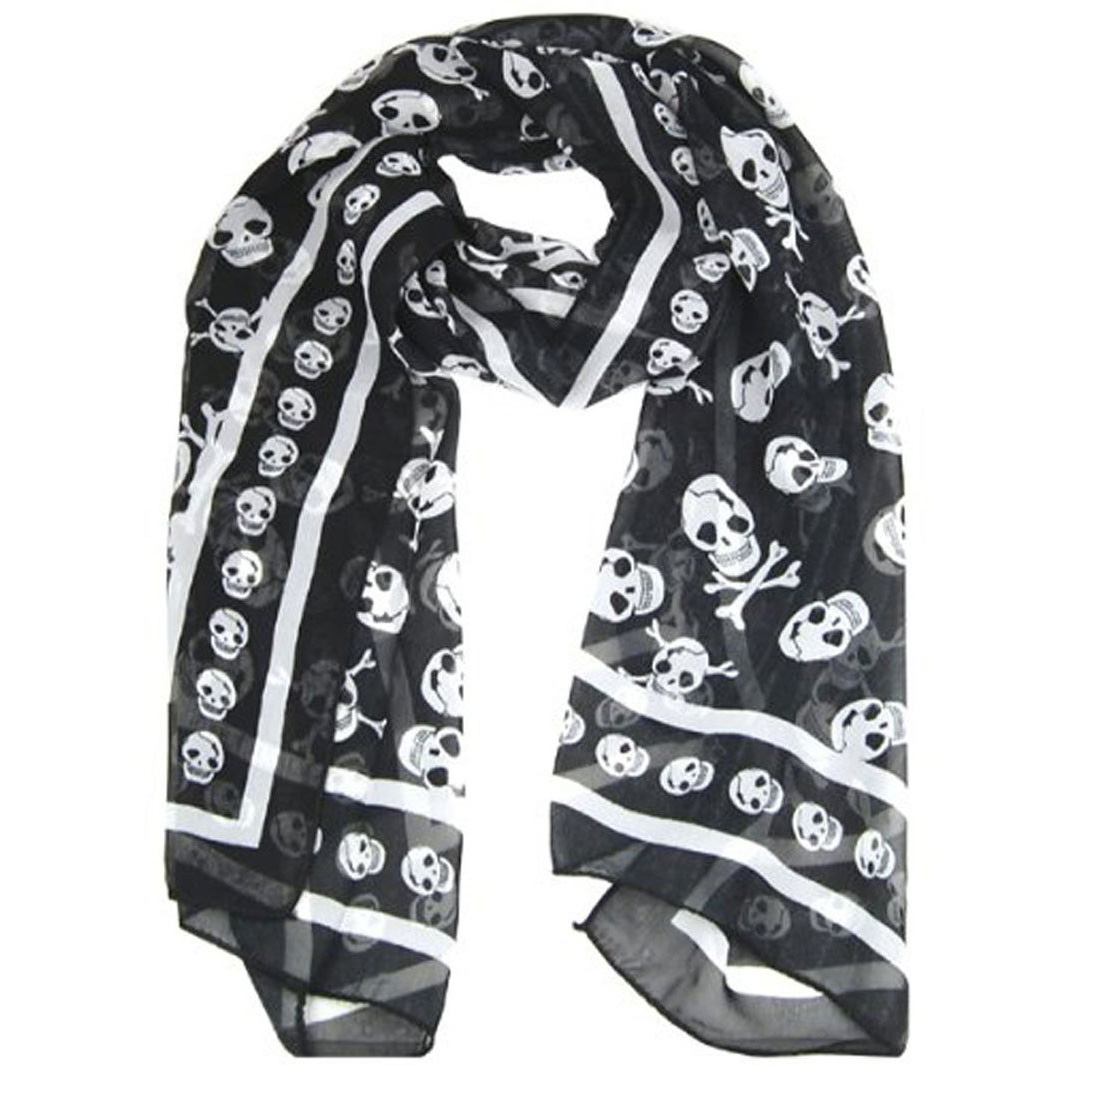 2017 NEW Black Chiffon Silk Skull Print Long Scarf Shawl For Women + Keyring